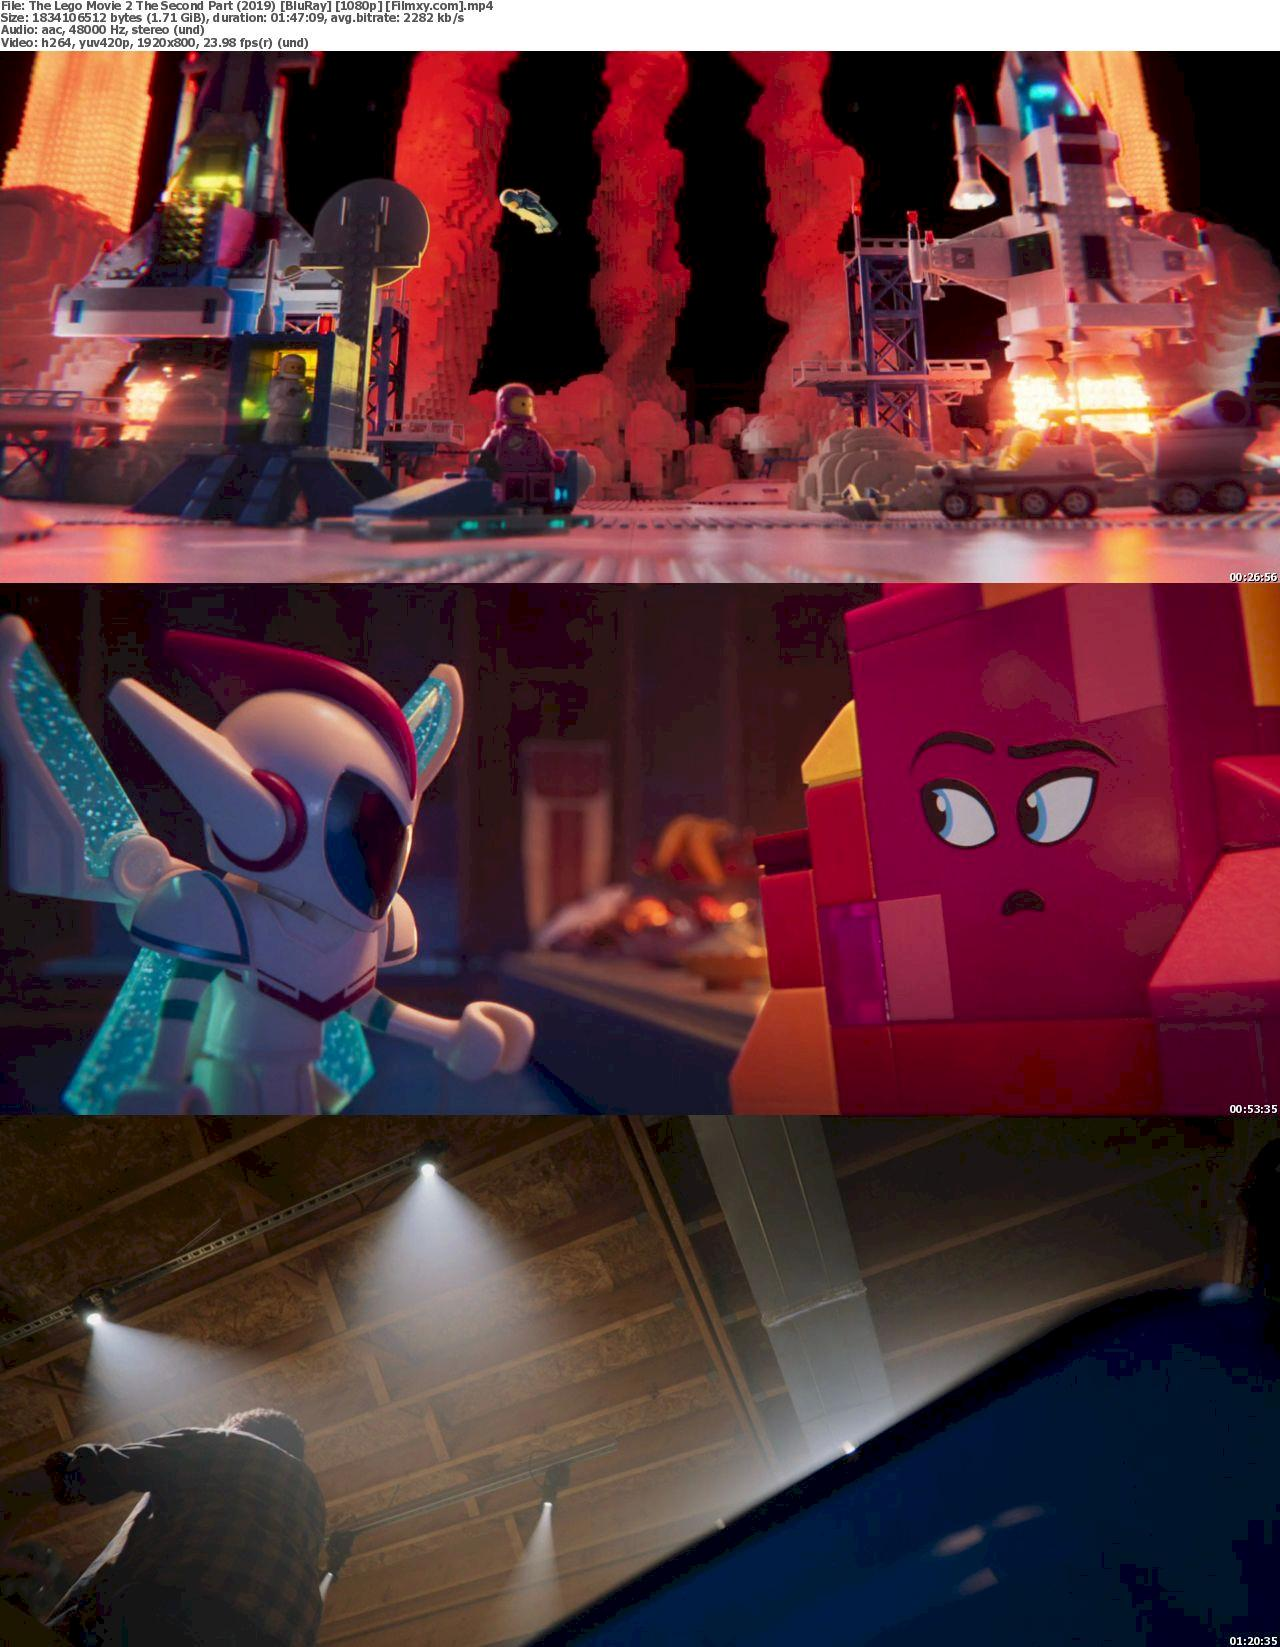 The Lego Movie 2: The Second Part (2019) [720p & 1080p] BluRay Free Movie Watch Online & Download 1080p Screenshot